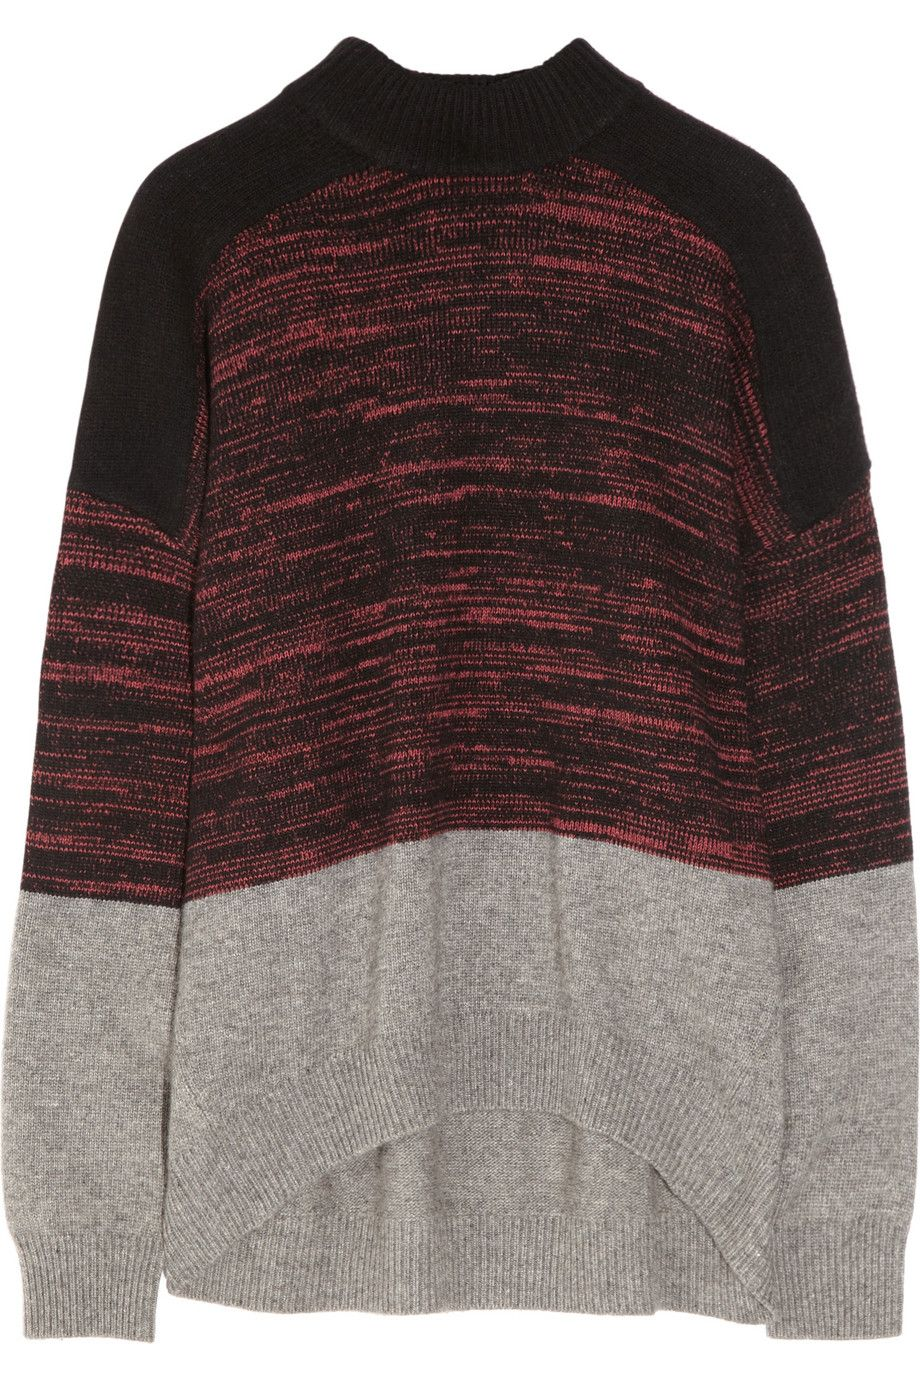 ALEXANDER WANG Color-block oversized knitted sweater | Knitwear ...